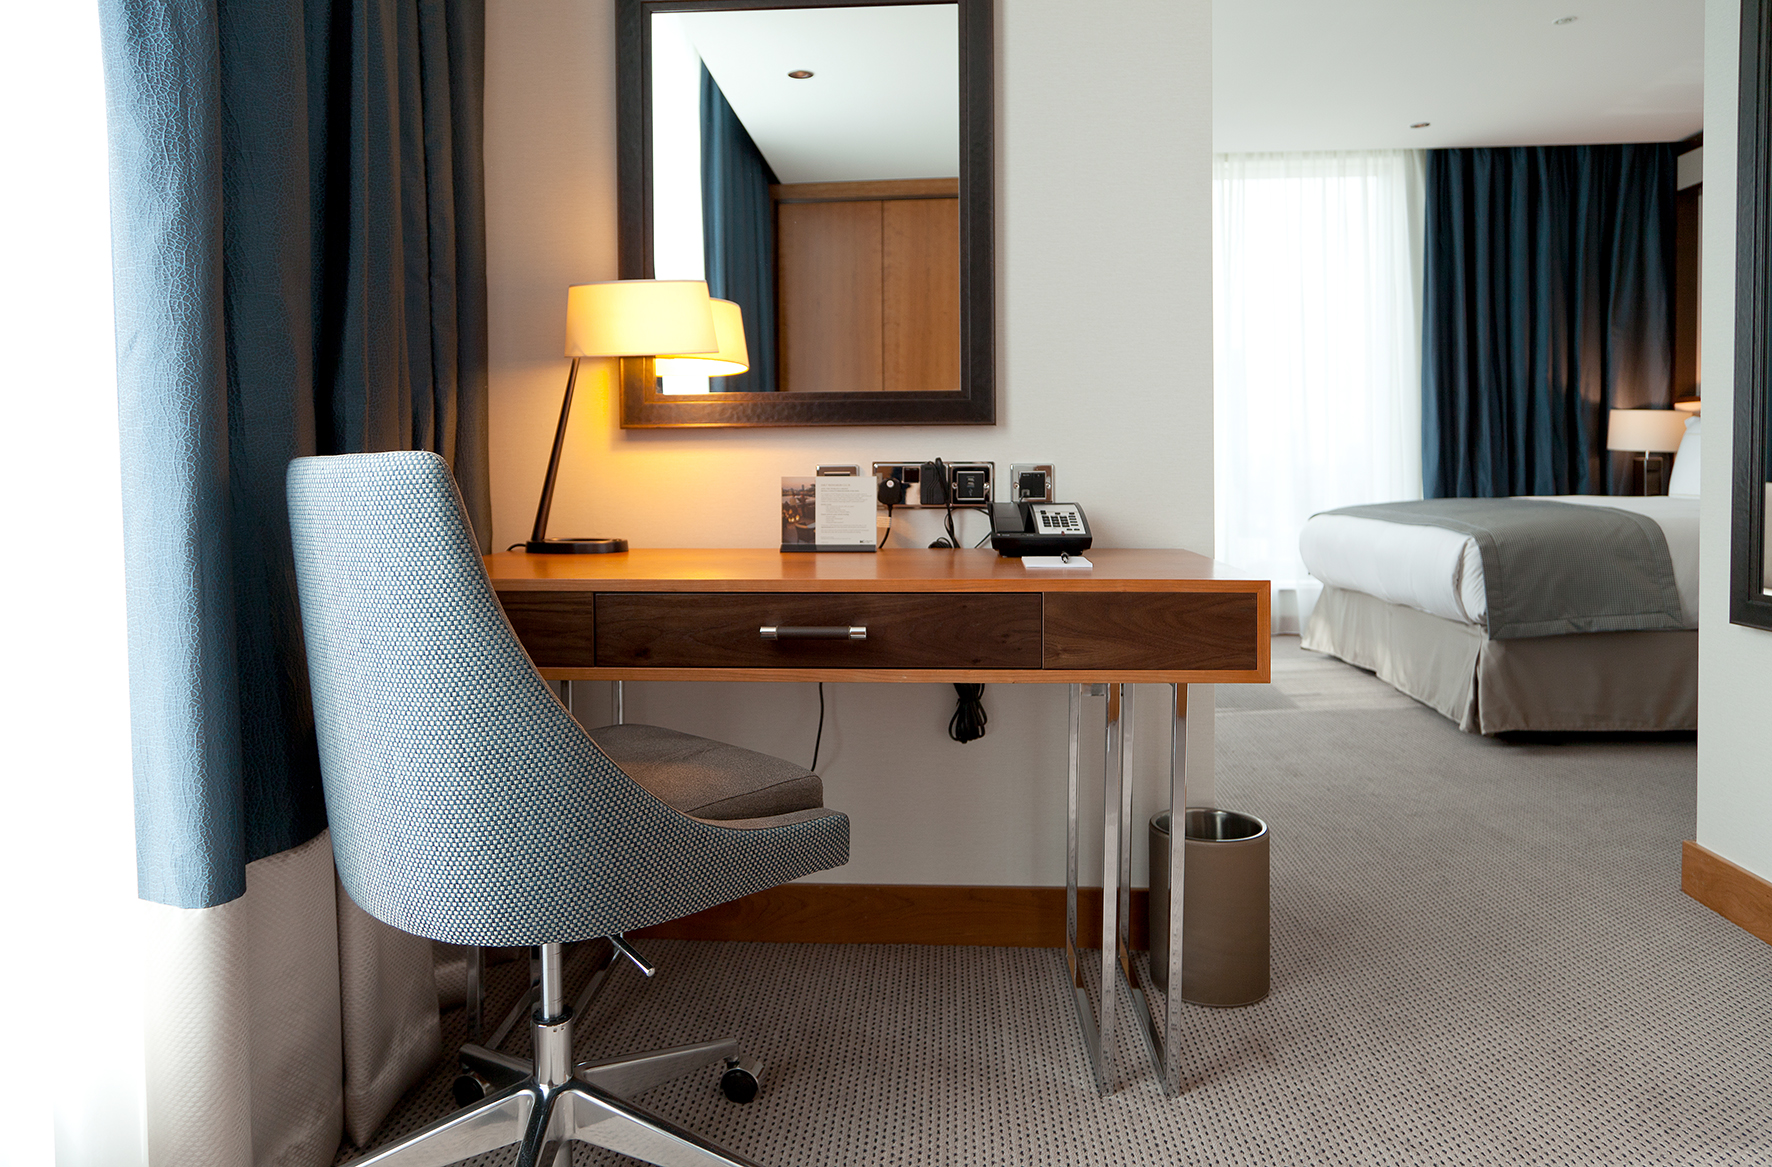 The 21st Century Hotel Design Challenge: Balancing Tech and Gimmicks